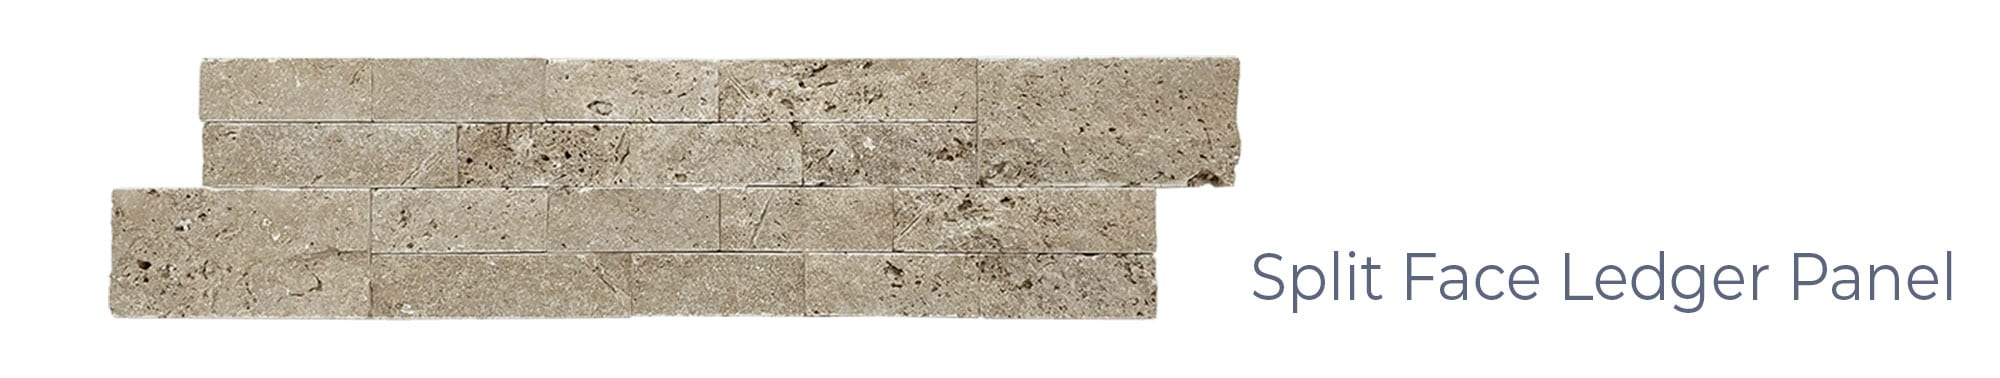 Stoneline-Group-Noche-Travertine-Marble-Collection-Marble-Veneer-Split-Face-Ledger-Panel-Pictures